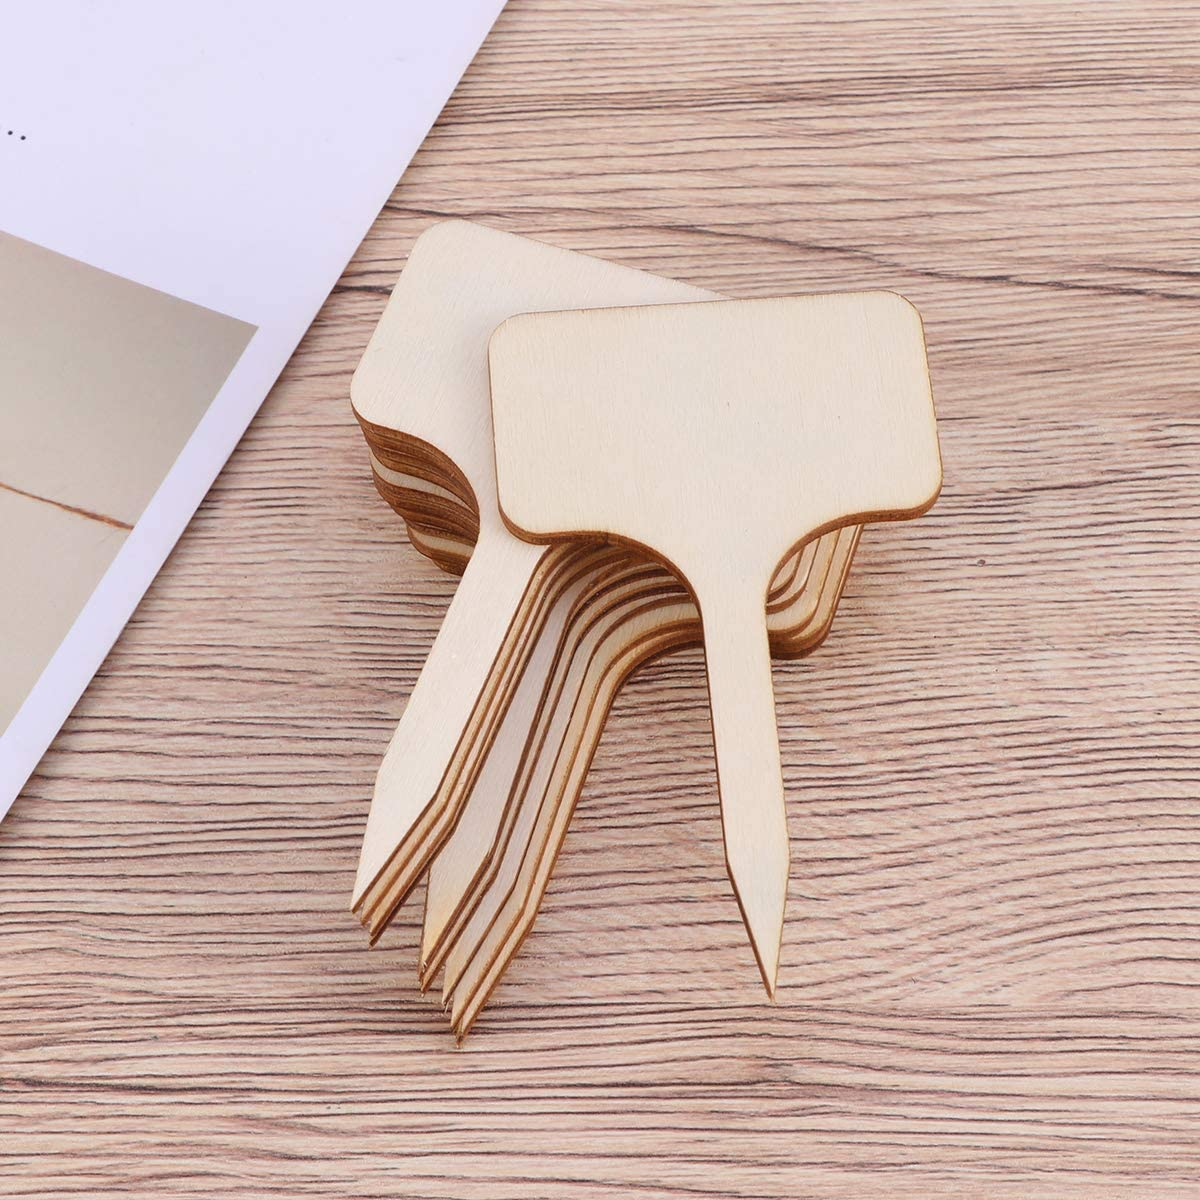 HEALLILY 50pcs T-Type Plant Labels Garden Plant Tags Tag Plant Markers Wood Plant Tags Small Plant Blackboard